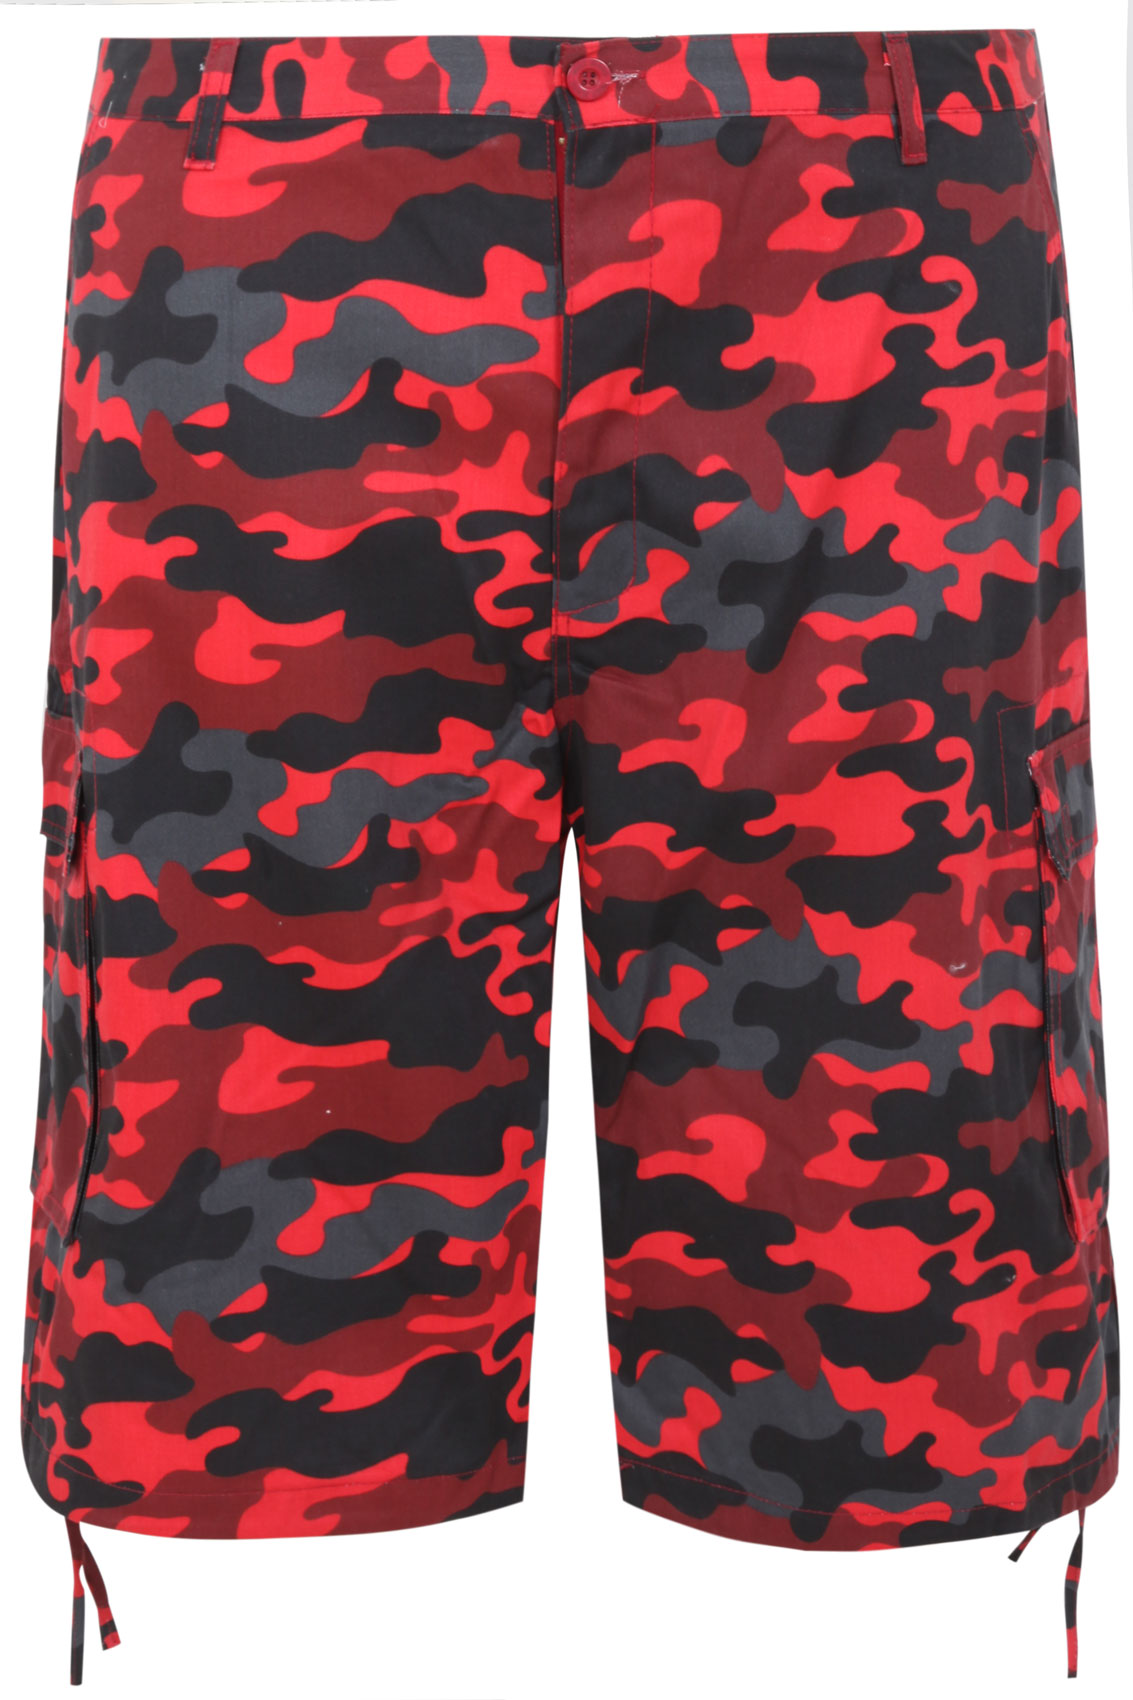 NOIZ Red & Black Camo Print Cotton Cargo Shorts With Pockets Extra ...